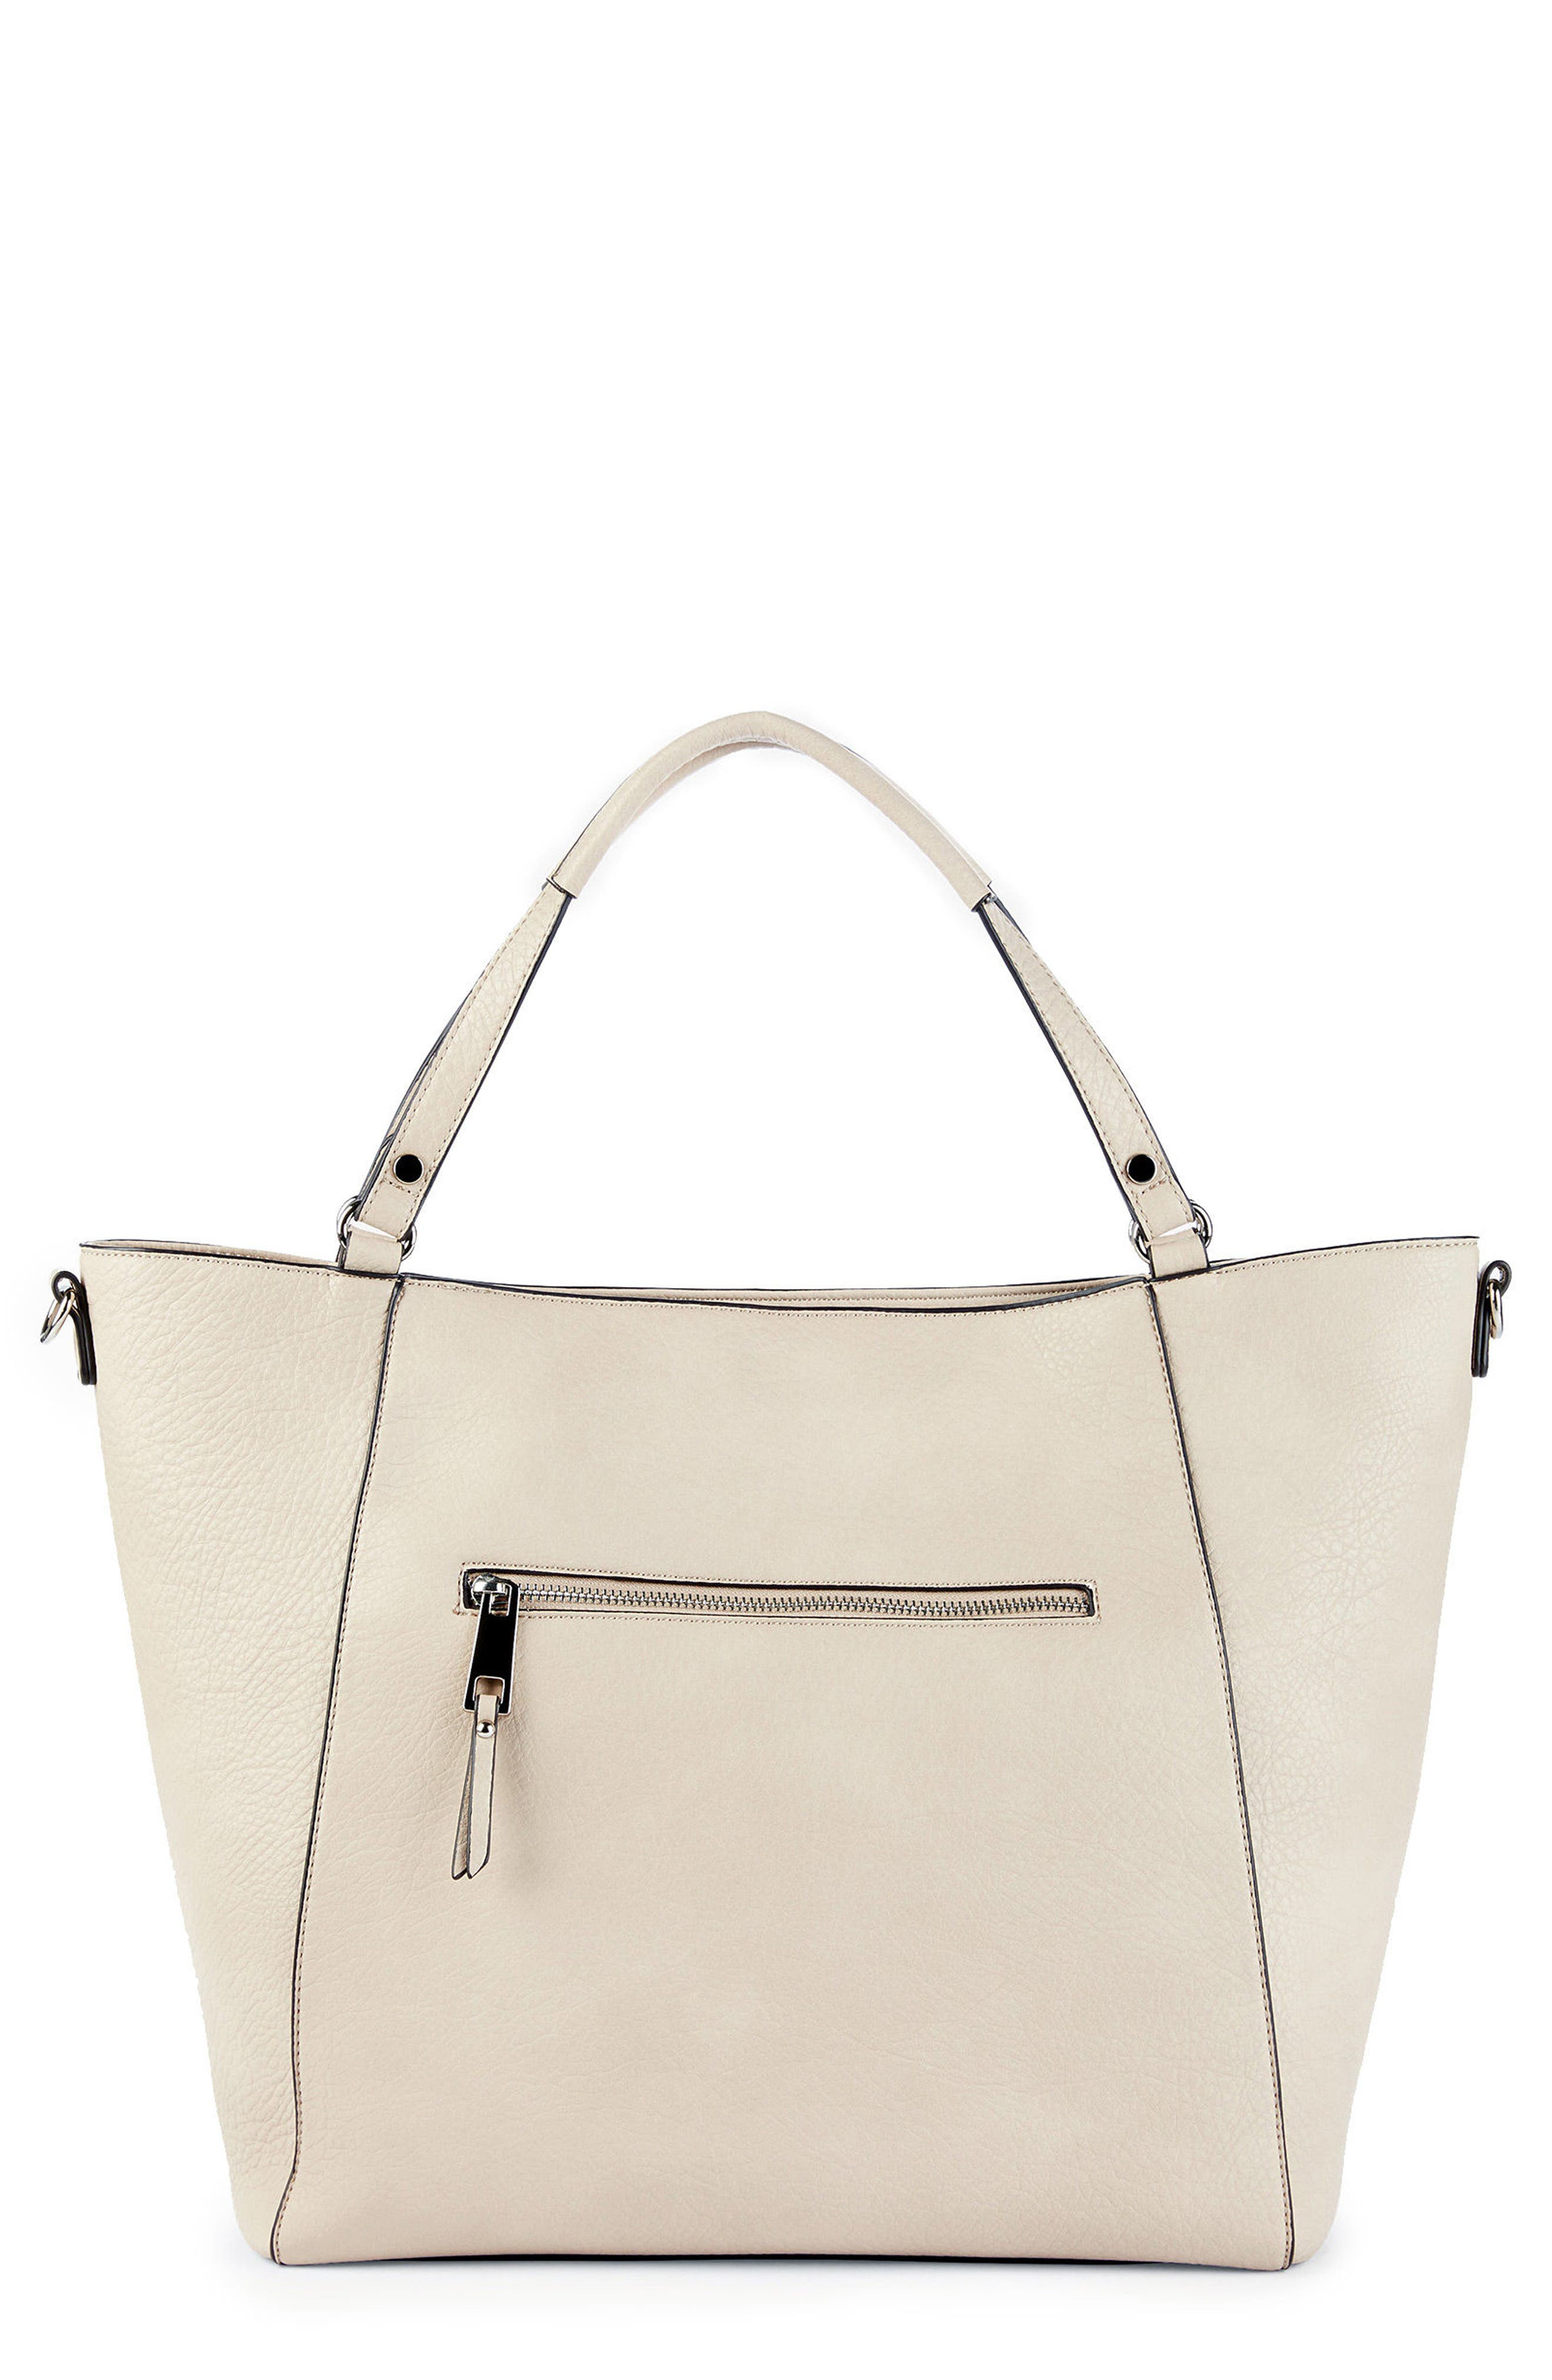 Nera Faux Leather Tote,                             Alternate thumbnail 3, color,                             Sandshell